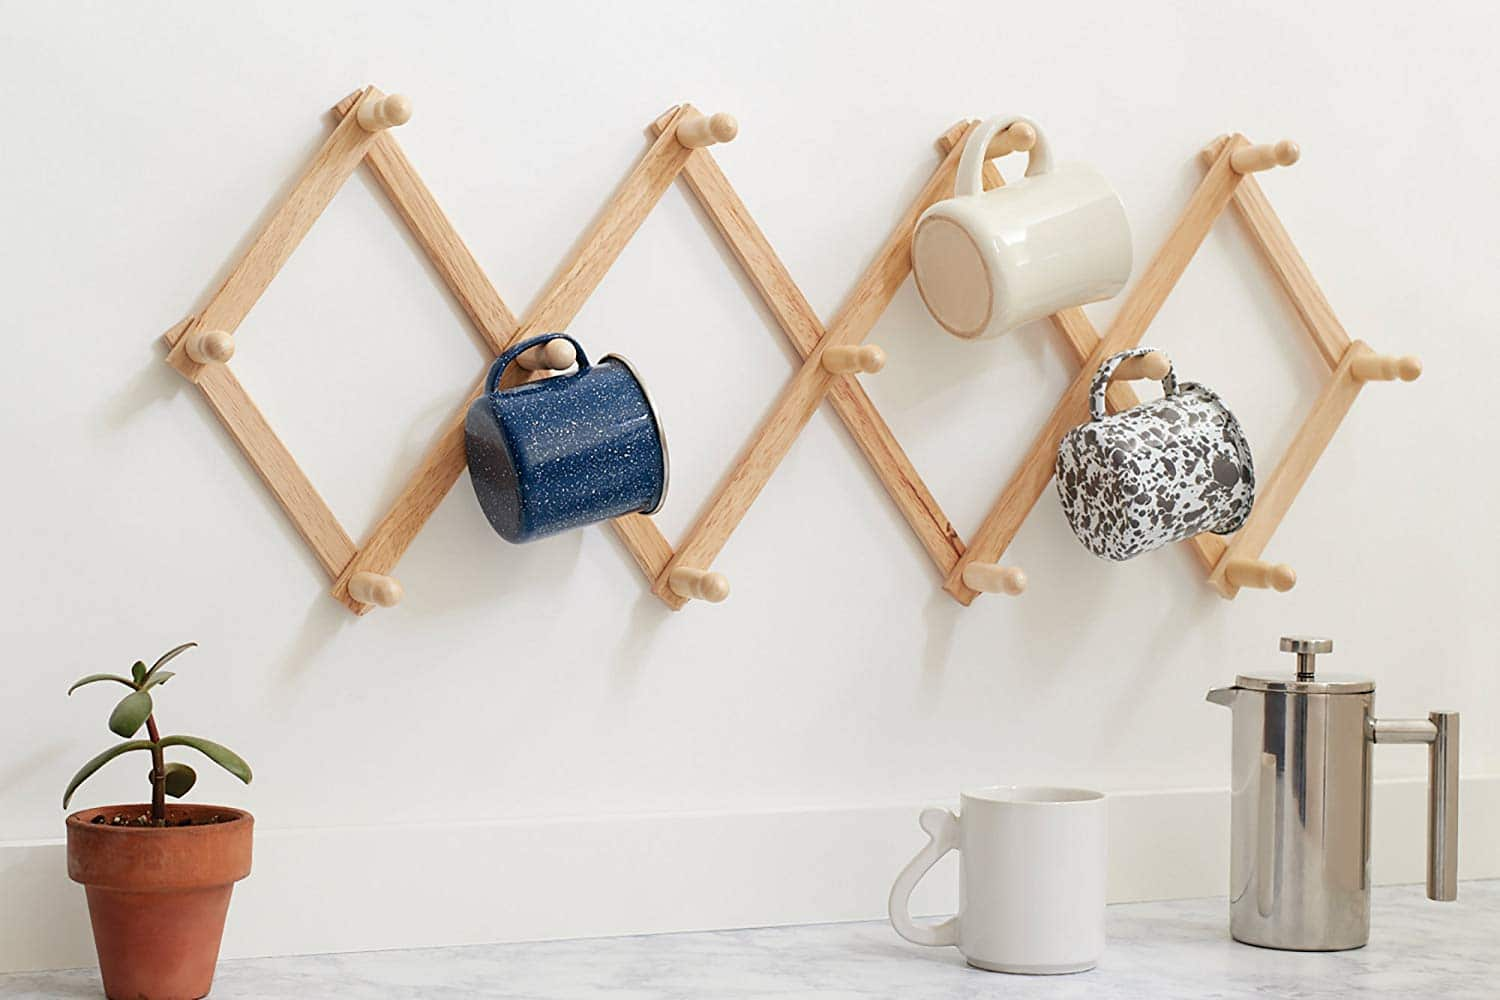 Top 10 Best Wall Mounted Cup Holders In 2021 Reviews Guide